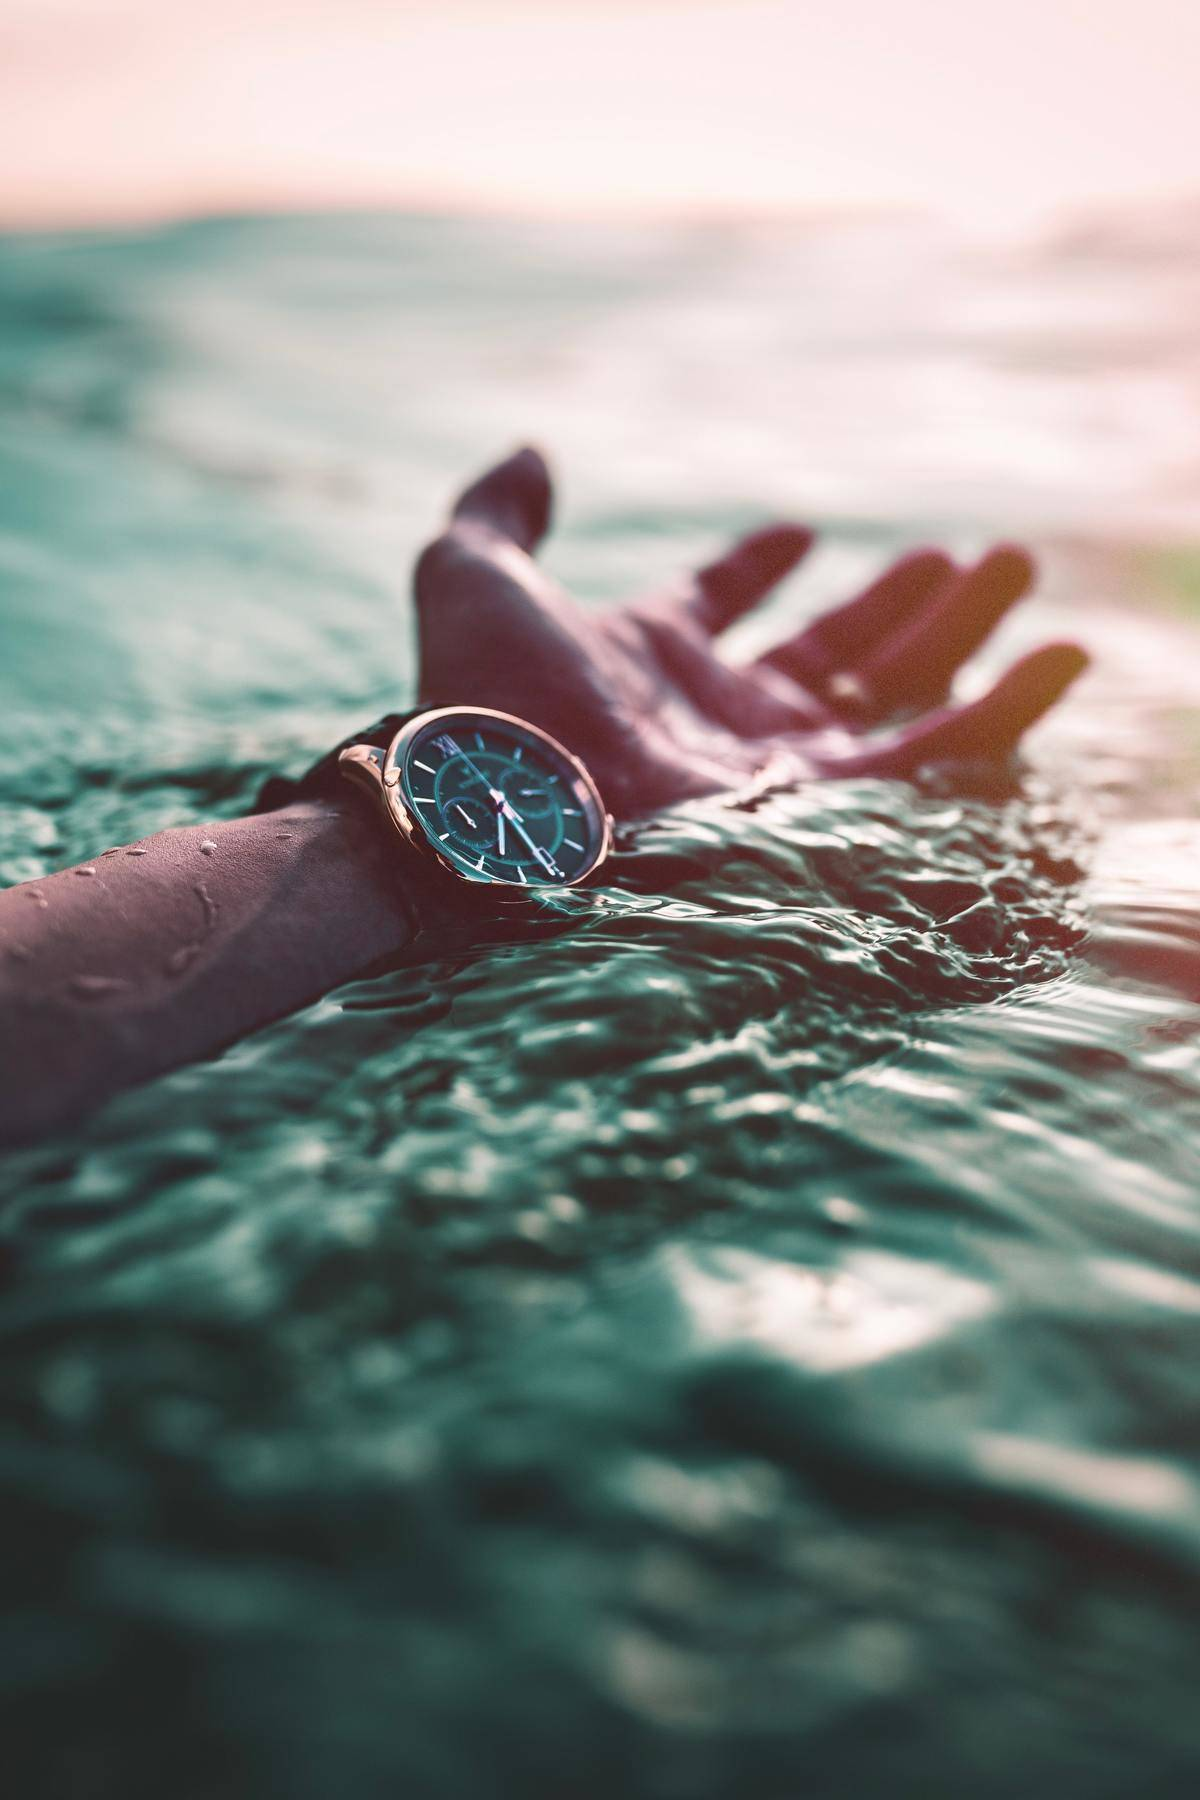 putting hand in water with watch on